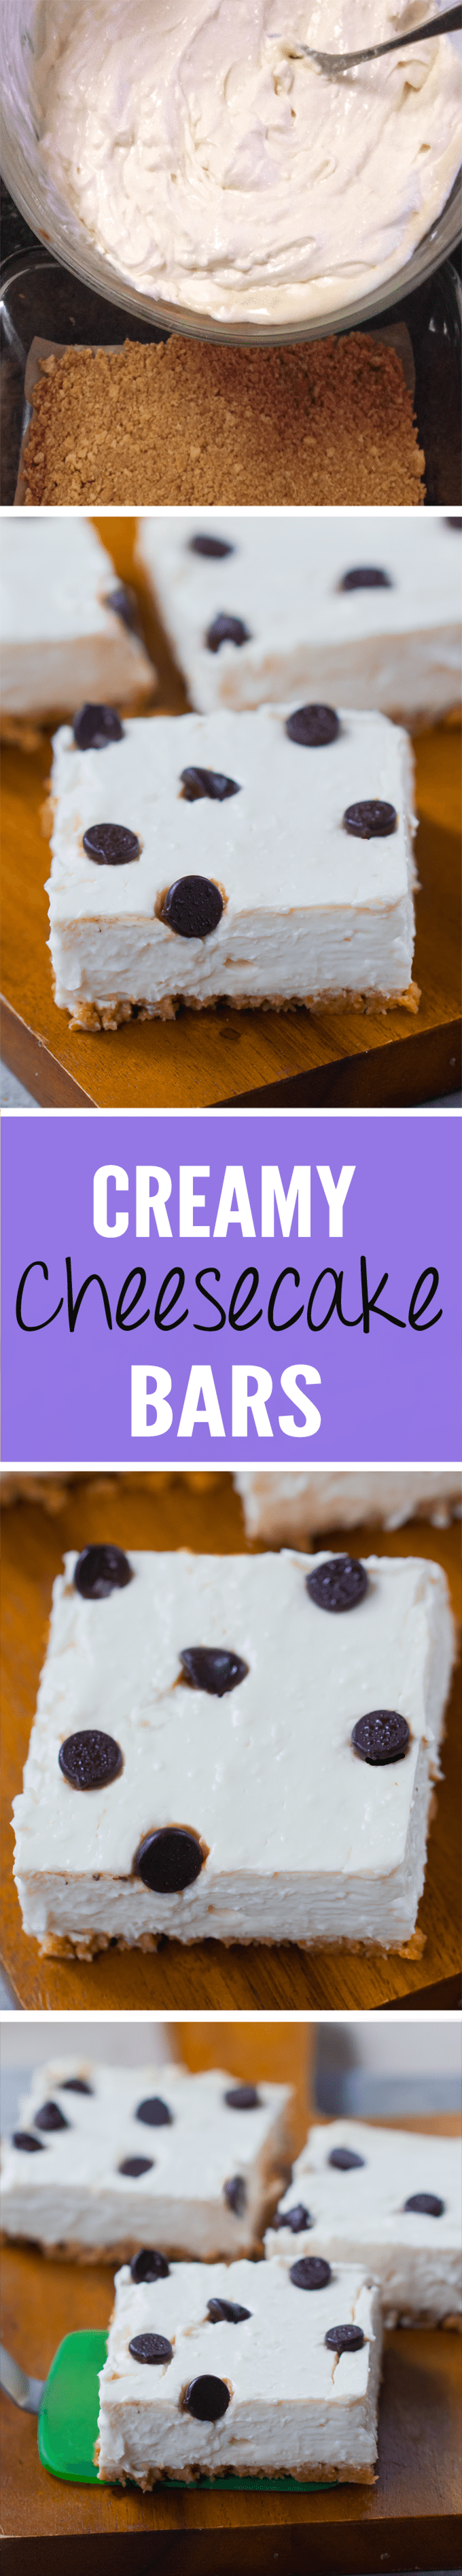 Creamy Chocolate Chip Cheesecake Bars - Ingredients: 12 oz cream cheese, 1 cup yogurt, 2 tsp pure vanilla extract, 1 tbsp lemon juice, 3/4 cup... Full recipe >> http://chocolatecoveredkatie.com @choccoveredkt